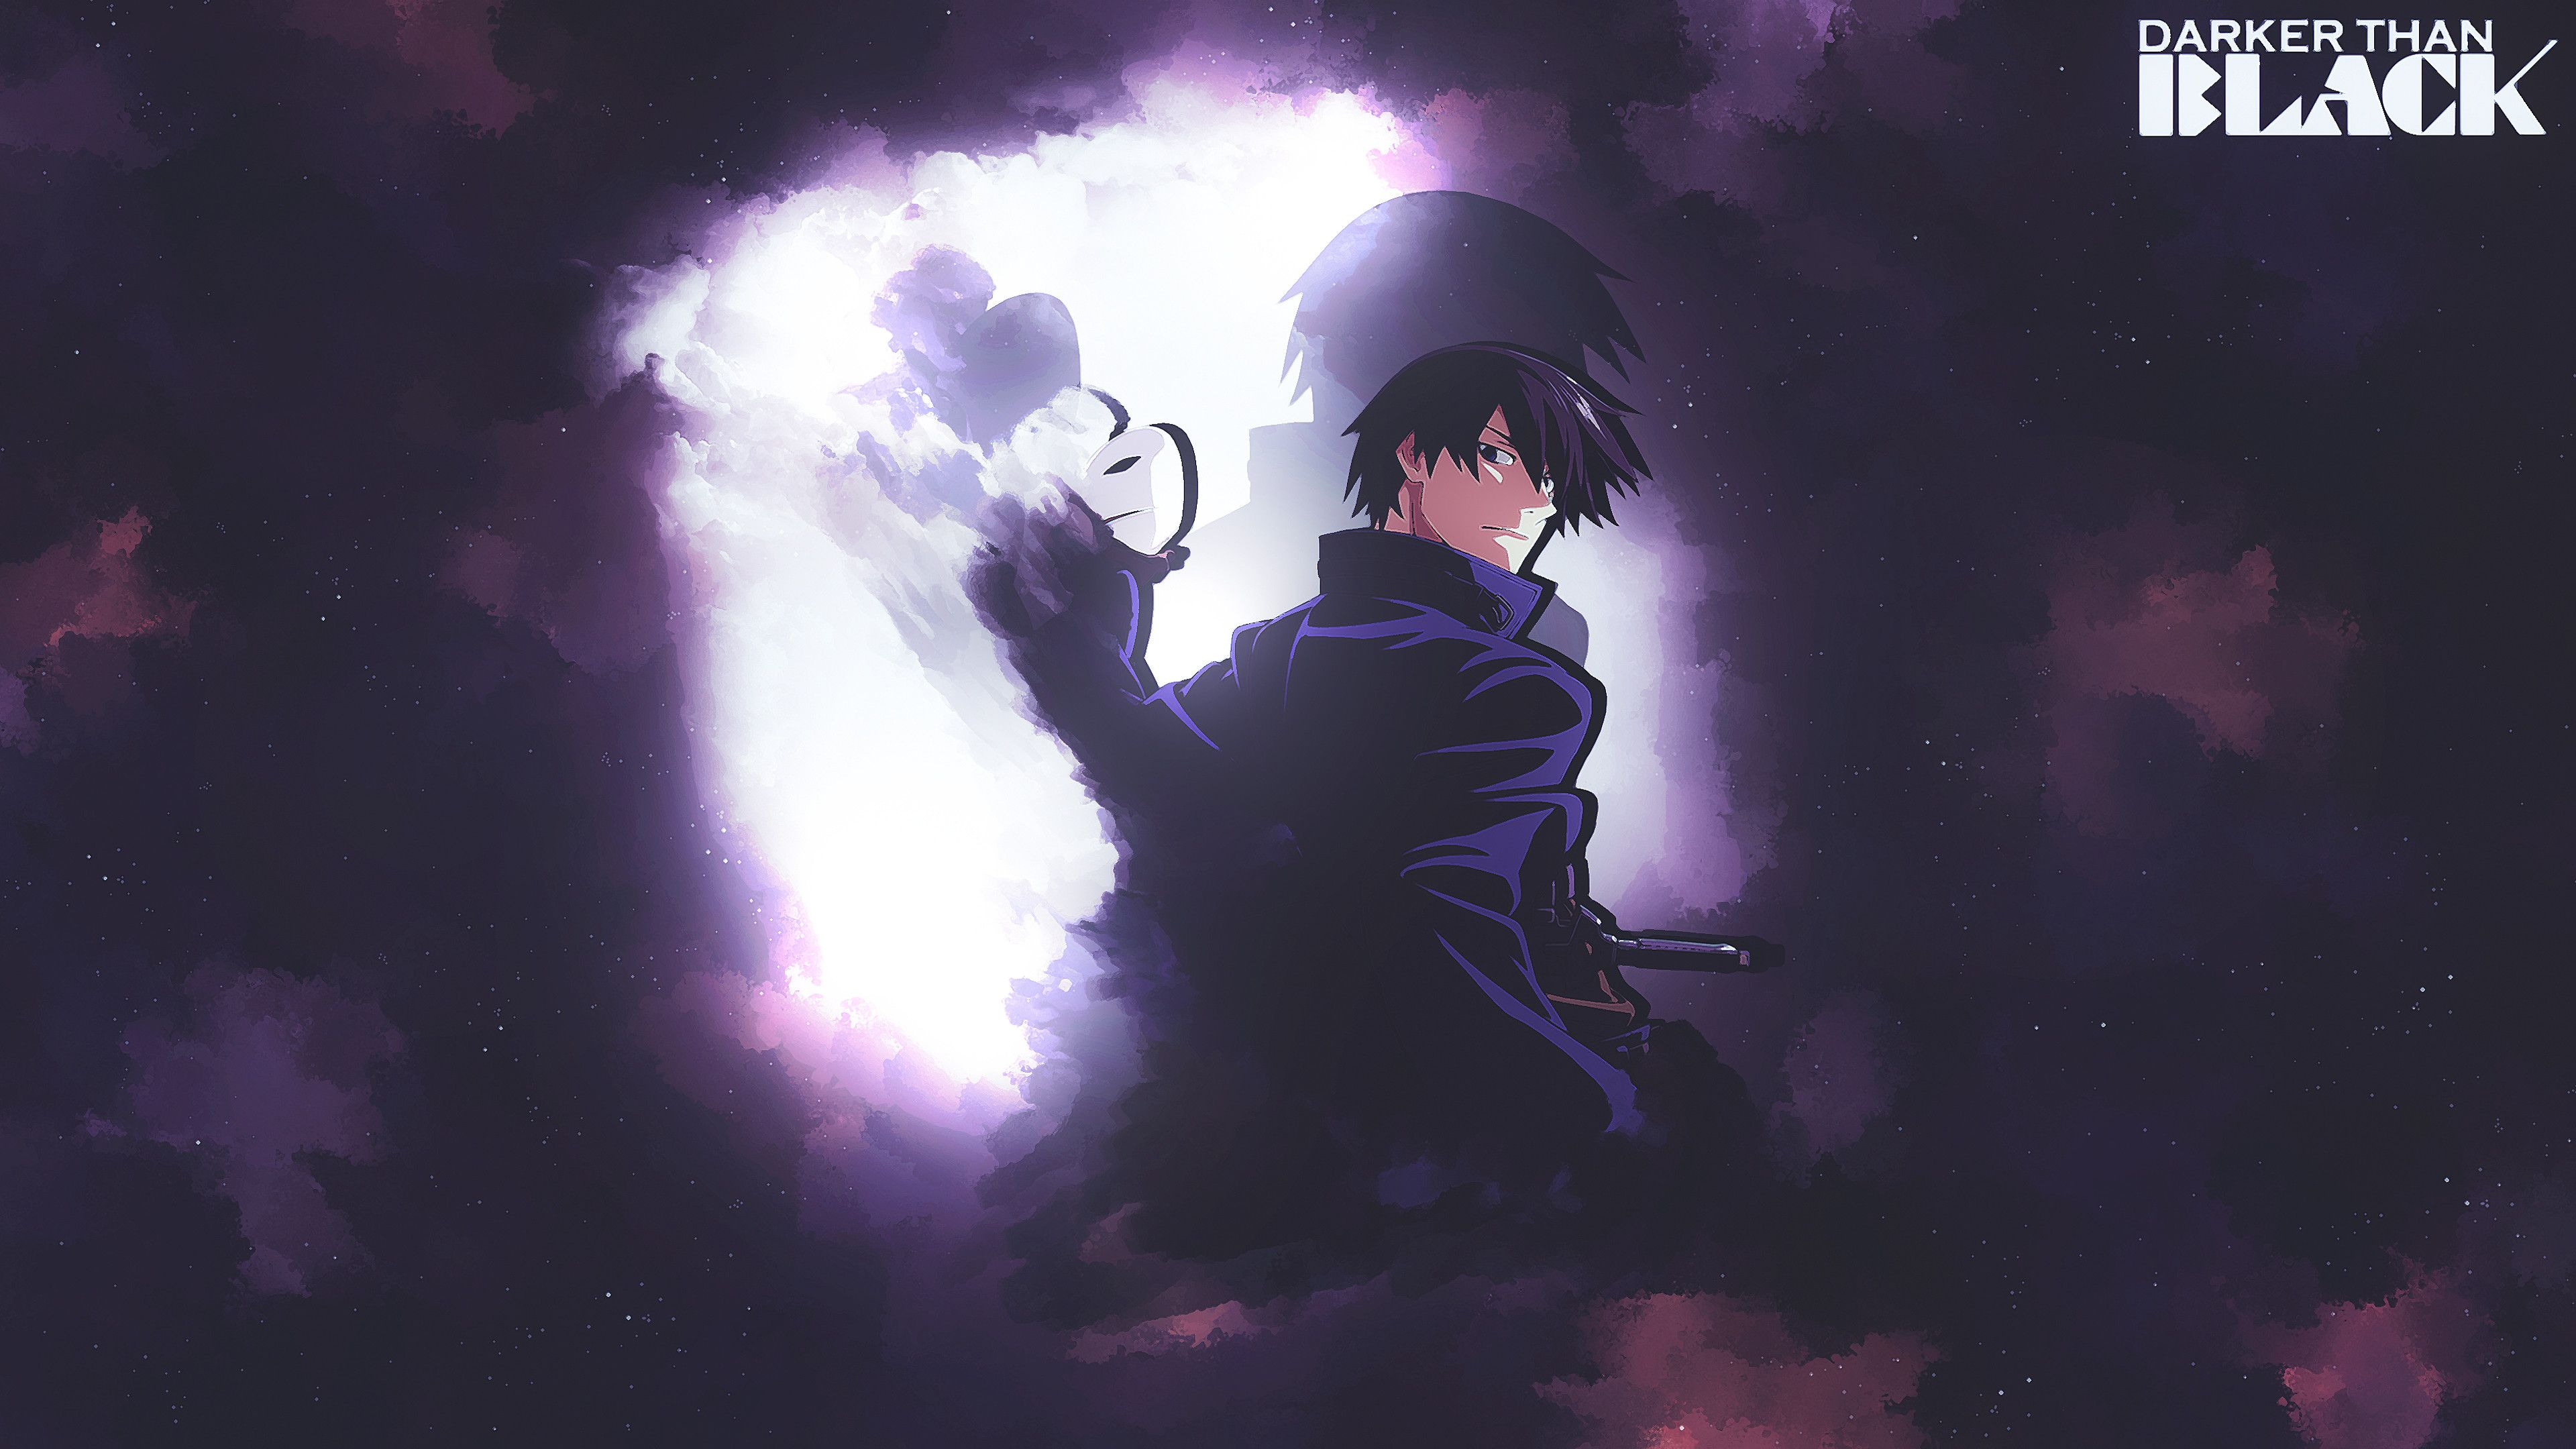 3840x2160 Anime Darker Than Black Hei Darker Than Black Dark